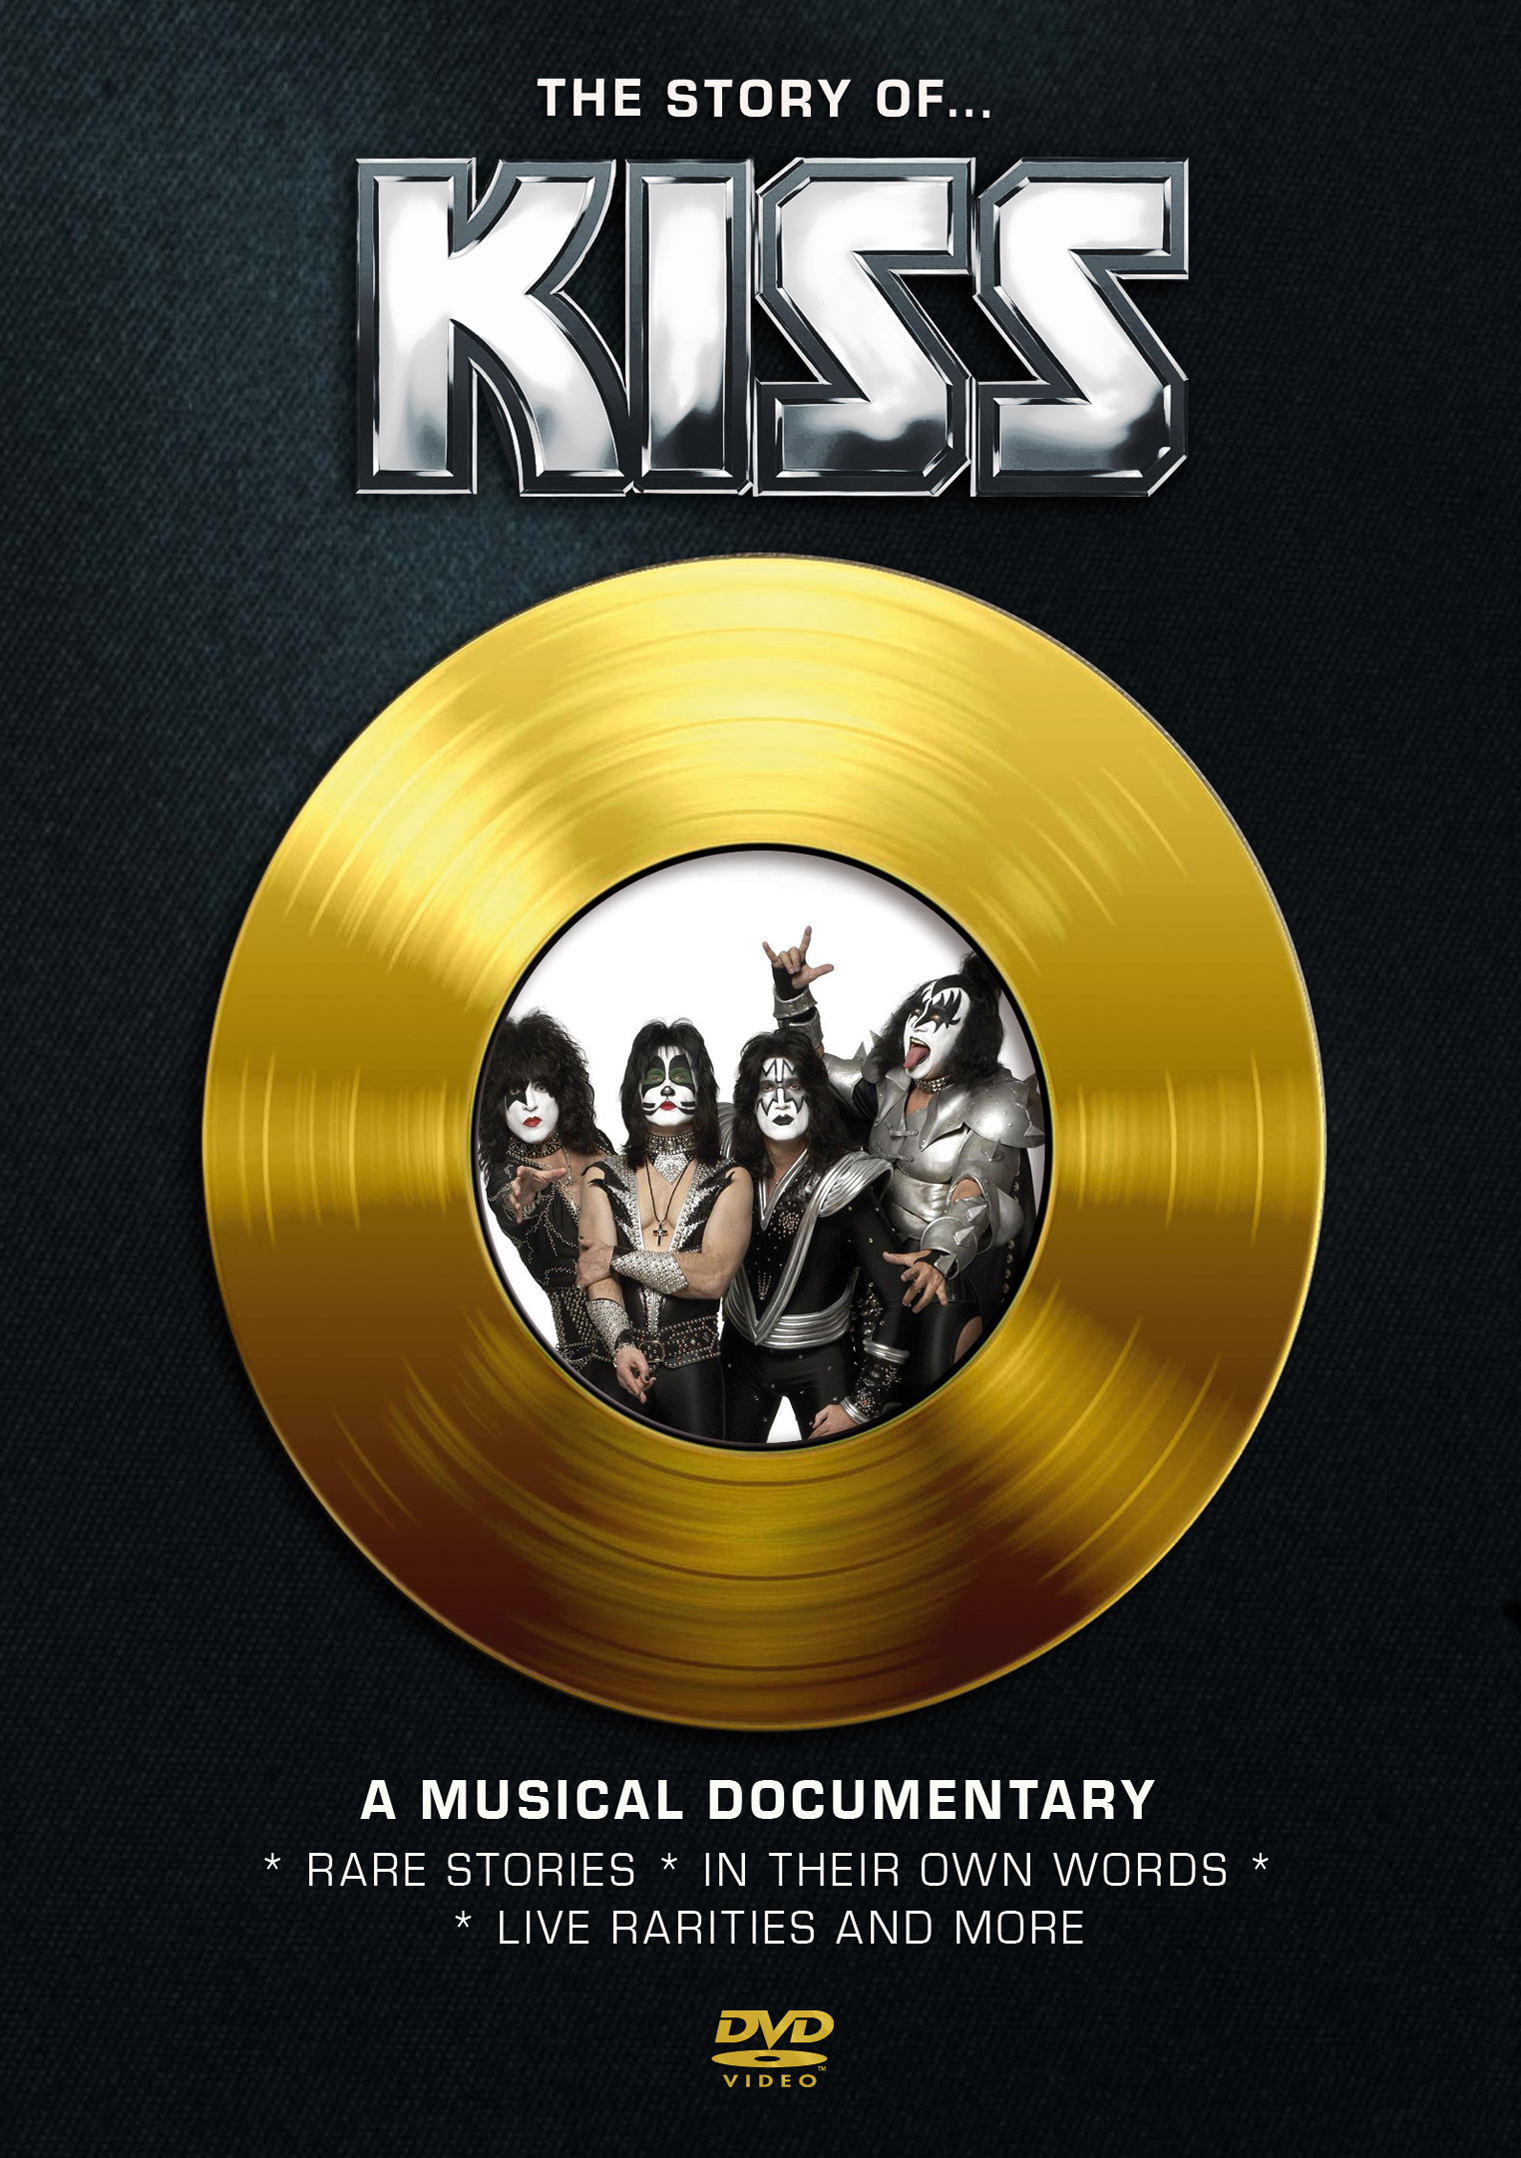 The Story of... KISS: A Musical Documentary